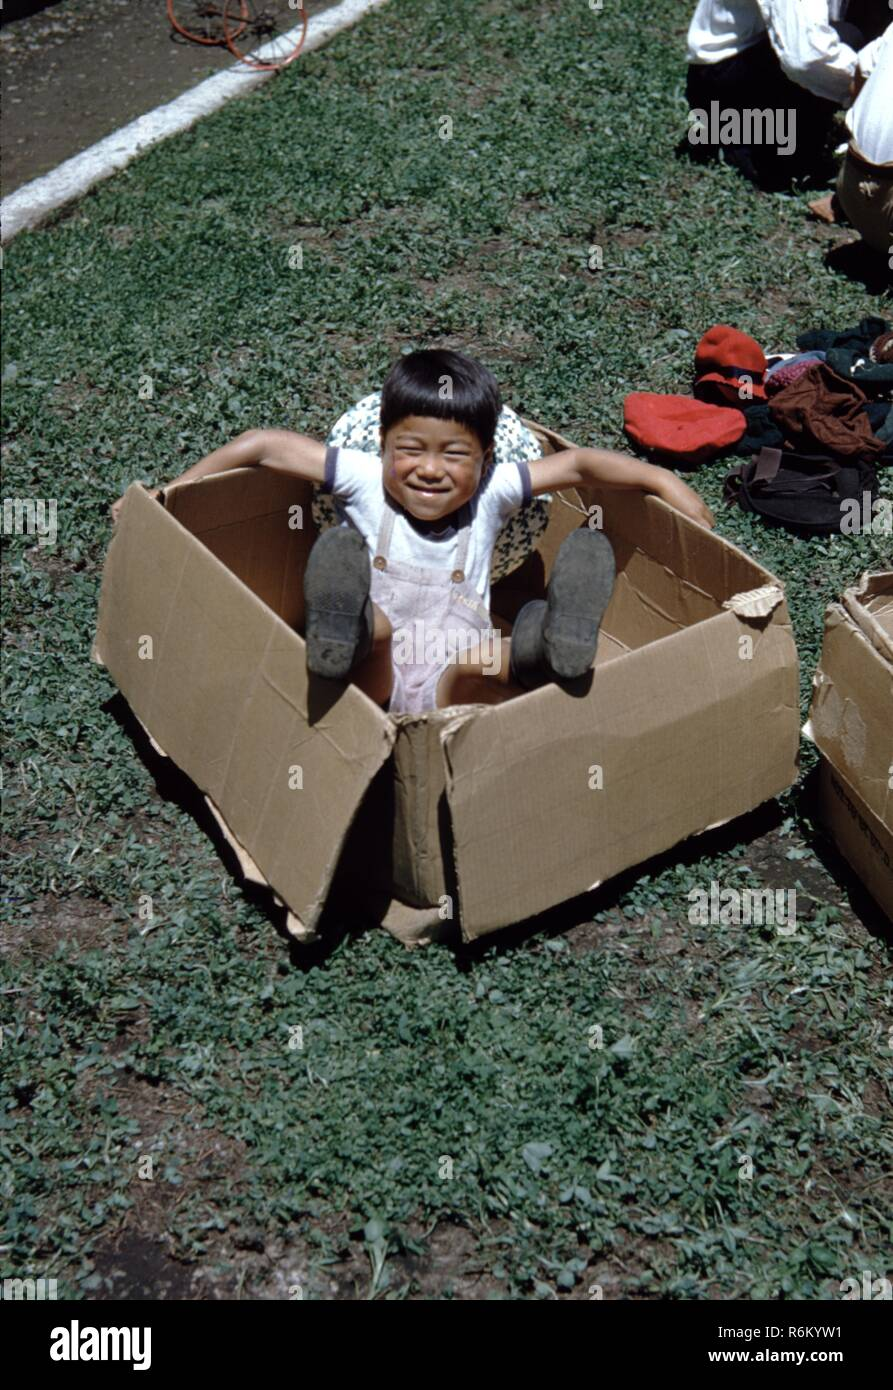 Historical photograph of a young Japanese boy playing in a cardboard box in a field in Japan, 1955. - Stock Image